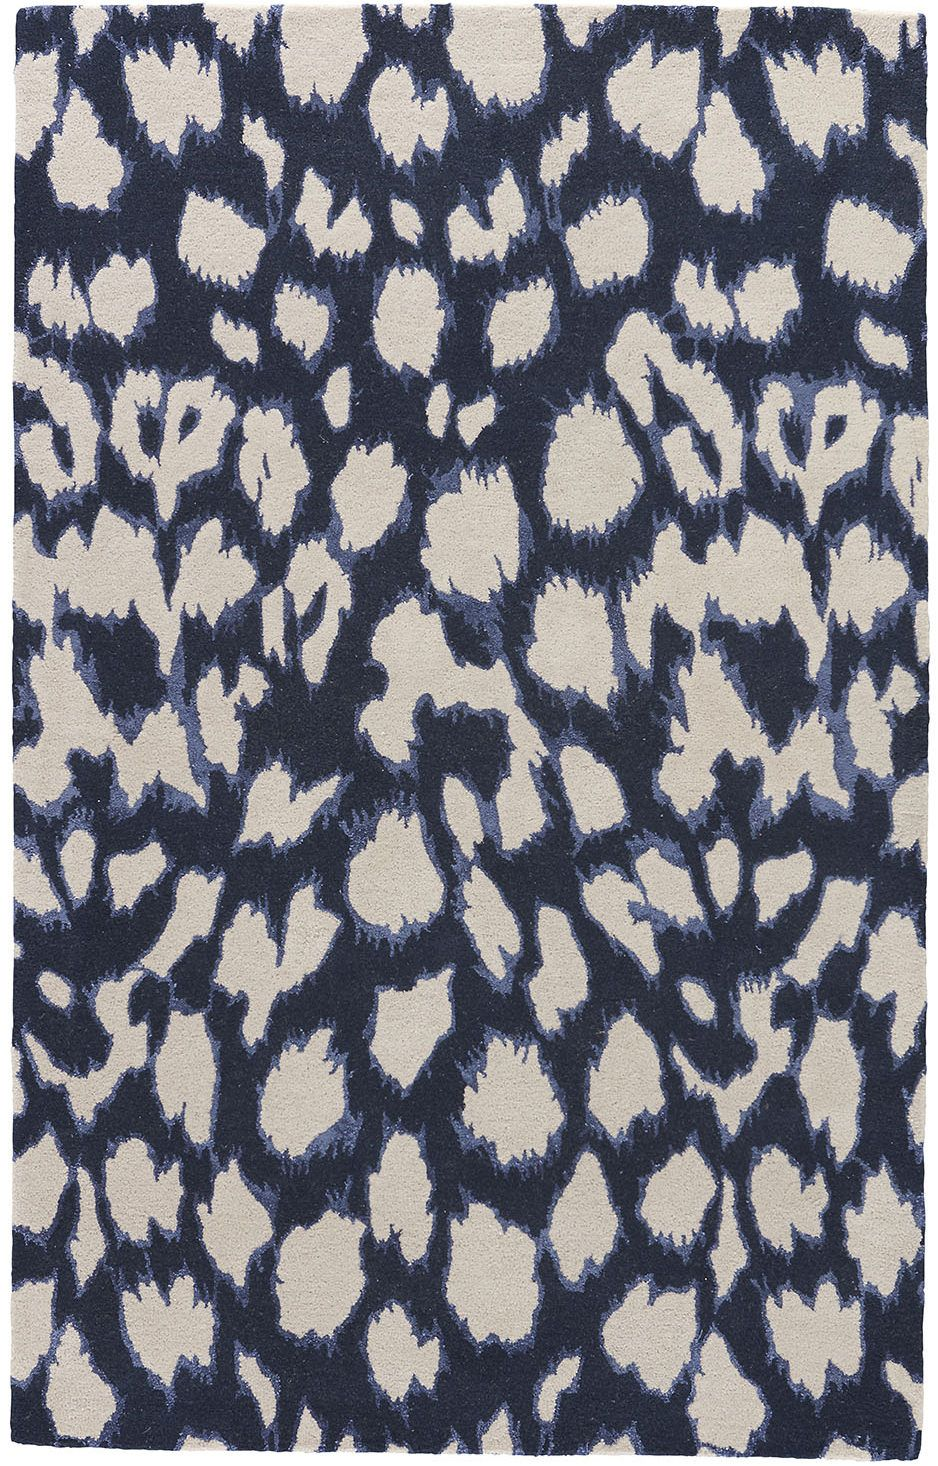 A Contemporary Take On Animal Print This Dark Navy Wool And Silk Hand Tufted Handmade Area Rugs Navy Rug Rug Pattern